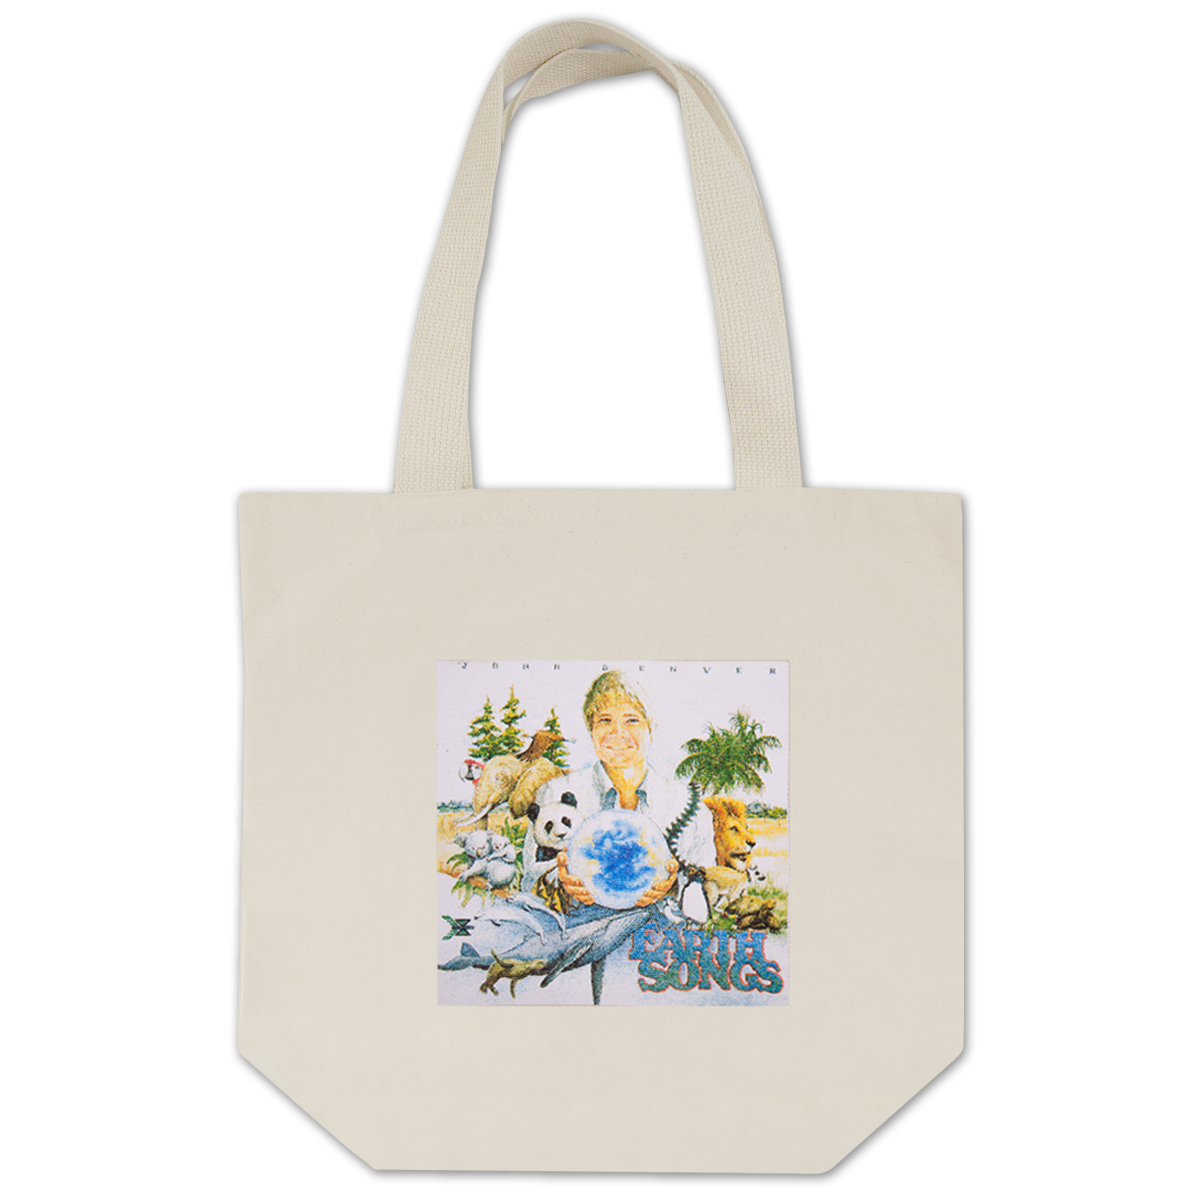 John Denver Earth Songs Tote Bag